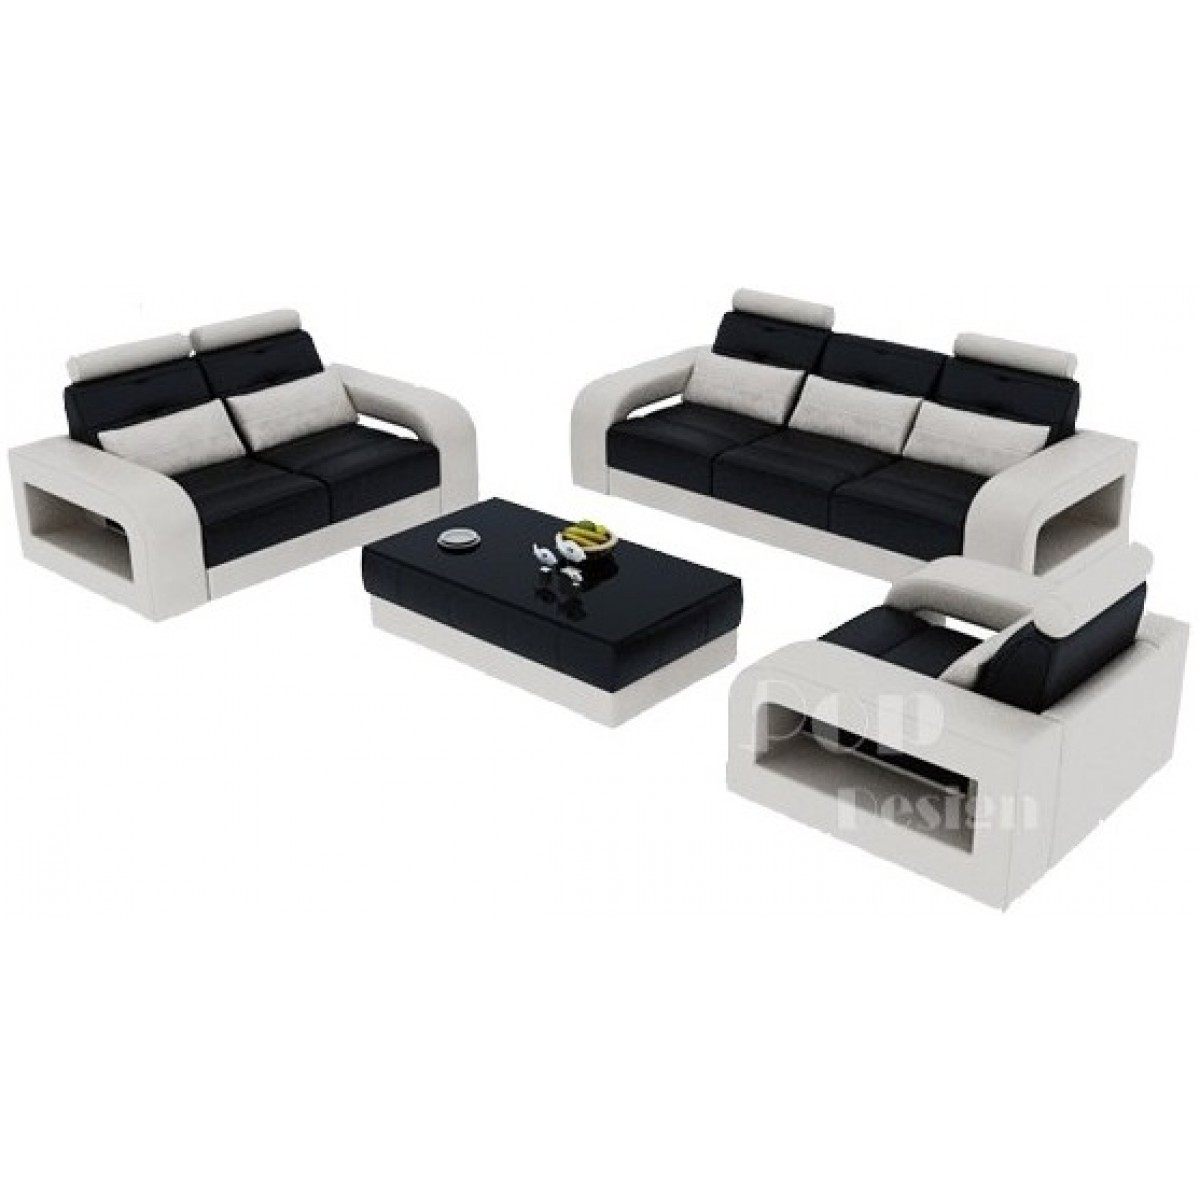 Salon set canap s personnalisable en cuir design salerno for Canape cuir kreabel